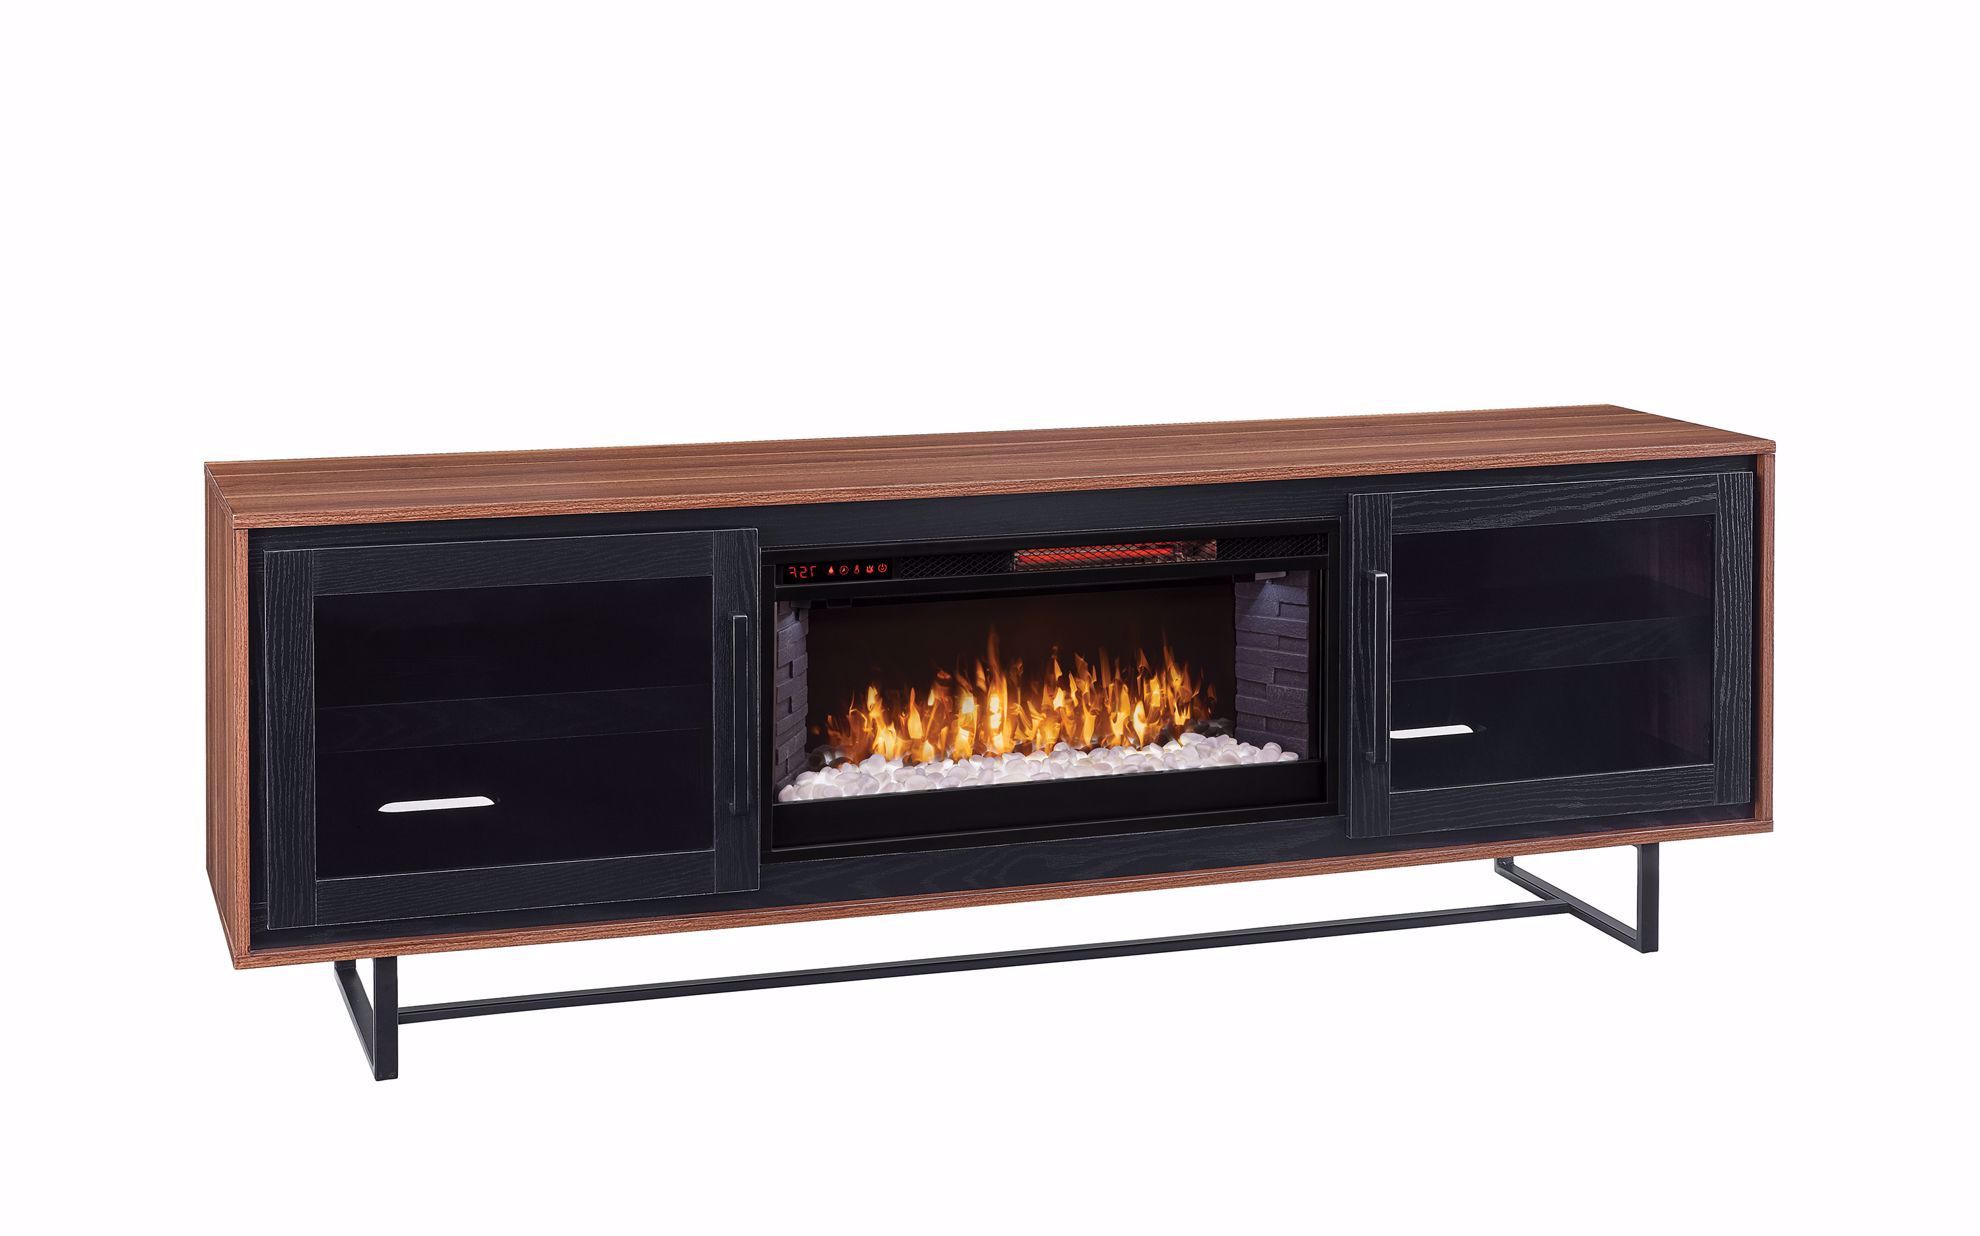 Picture of Santa Ana Brown/Black TV Stand with Fireplace